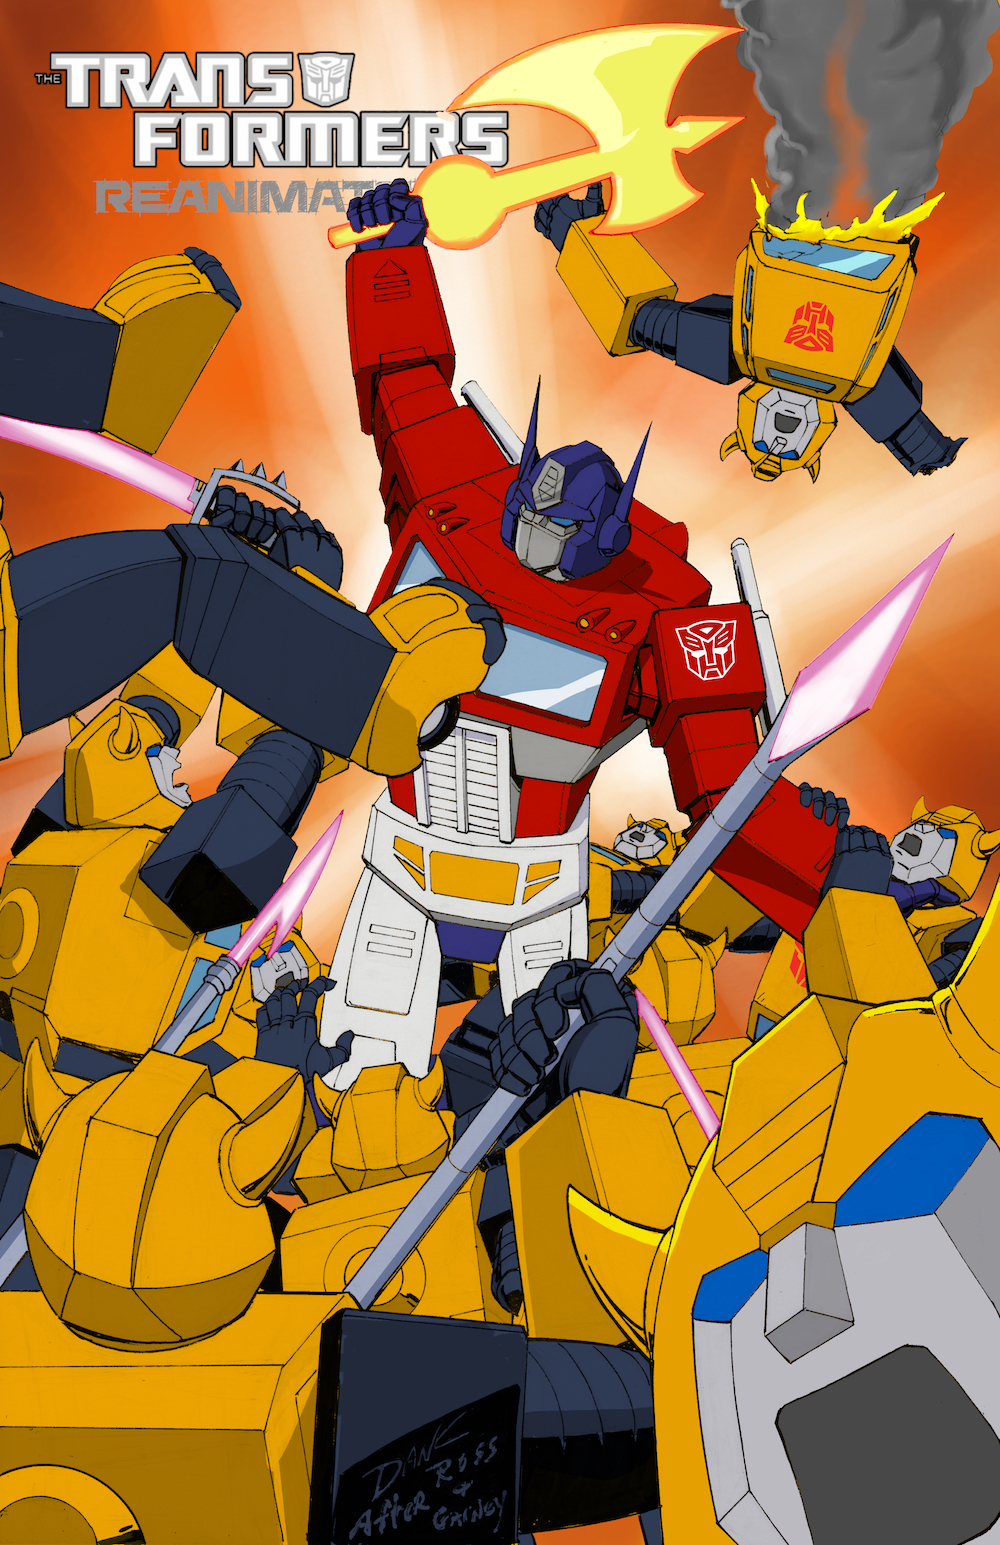 Transformers: REANIMATED Issue 14: A Swarm of Bumblebees